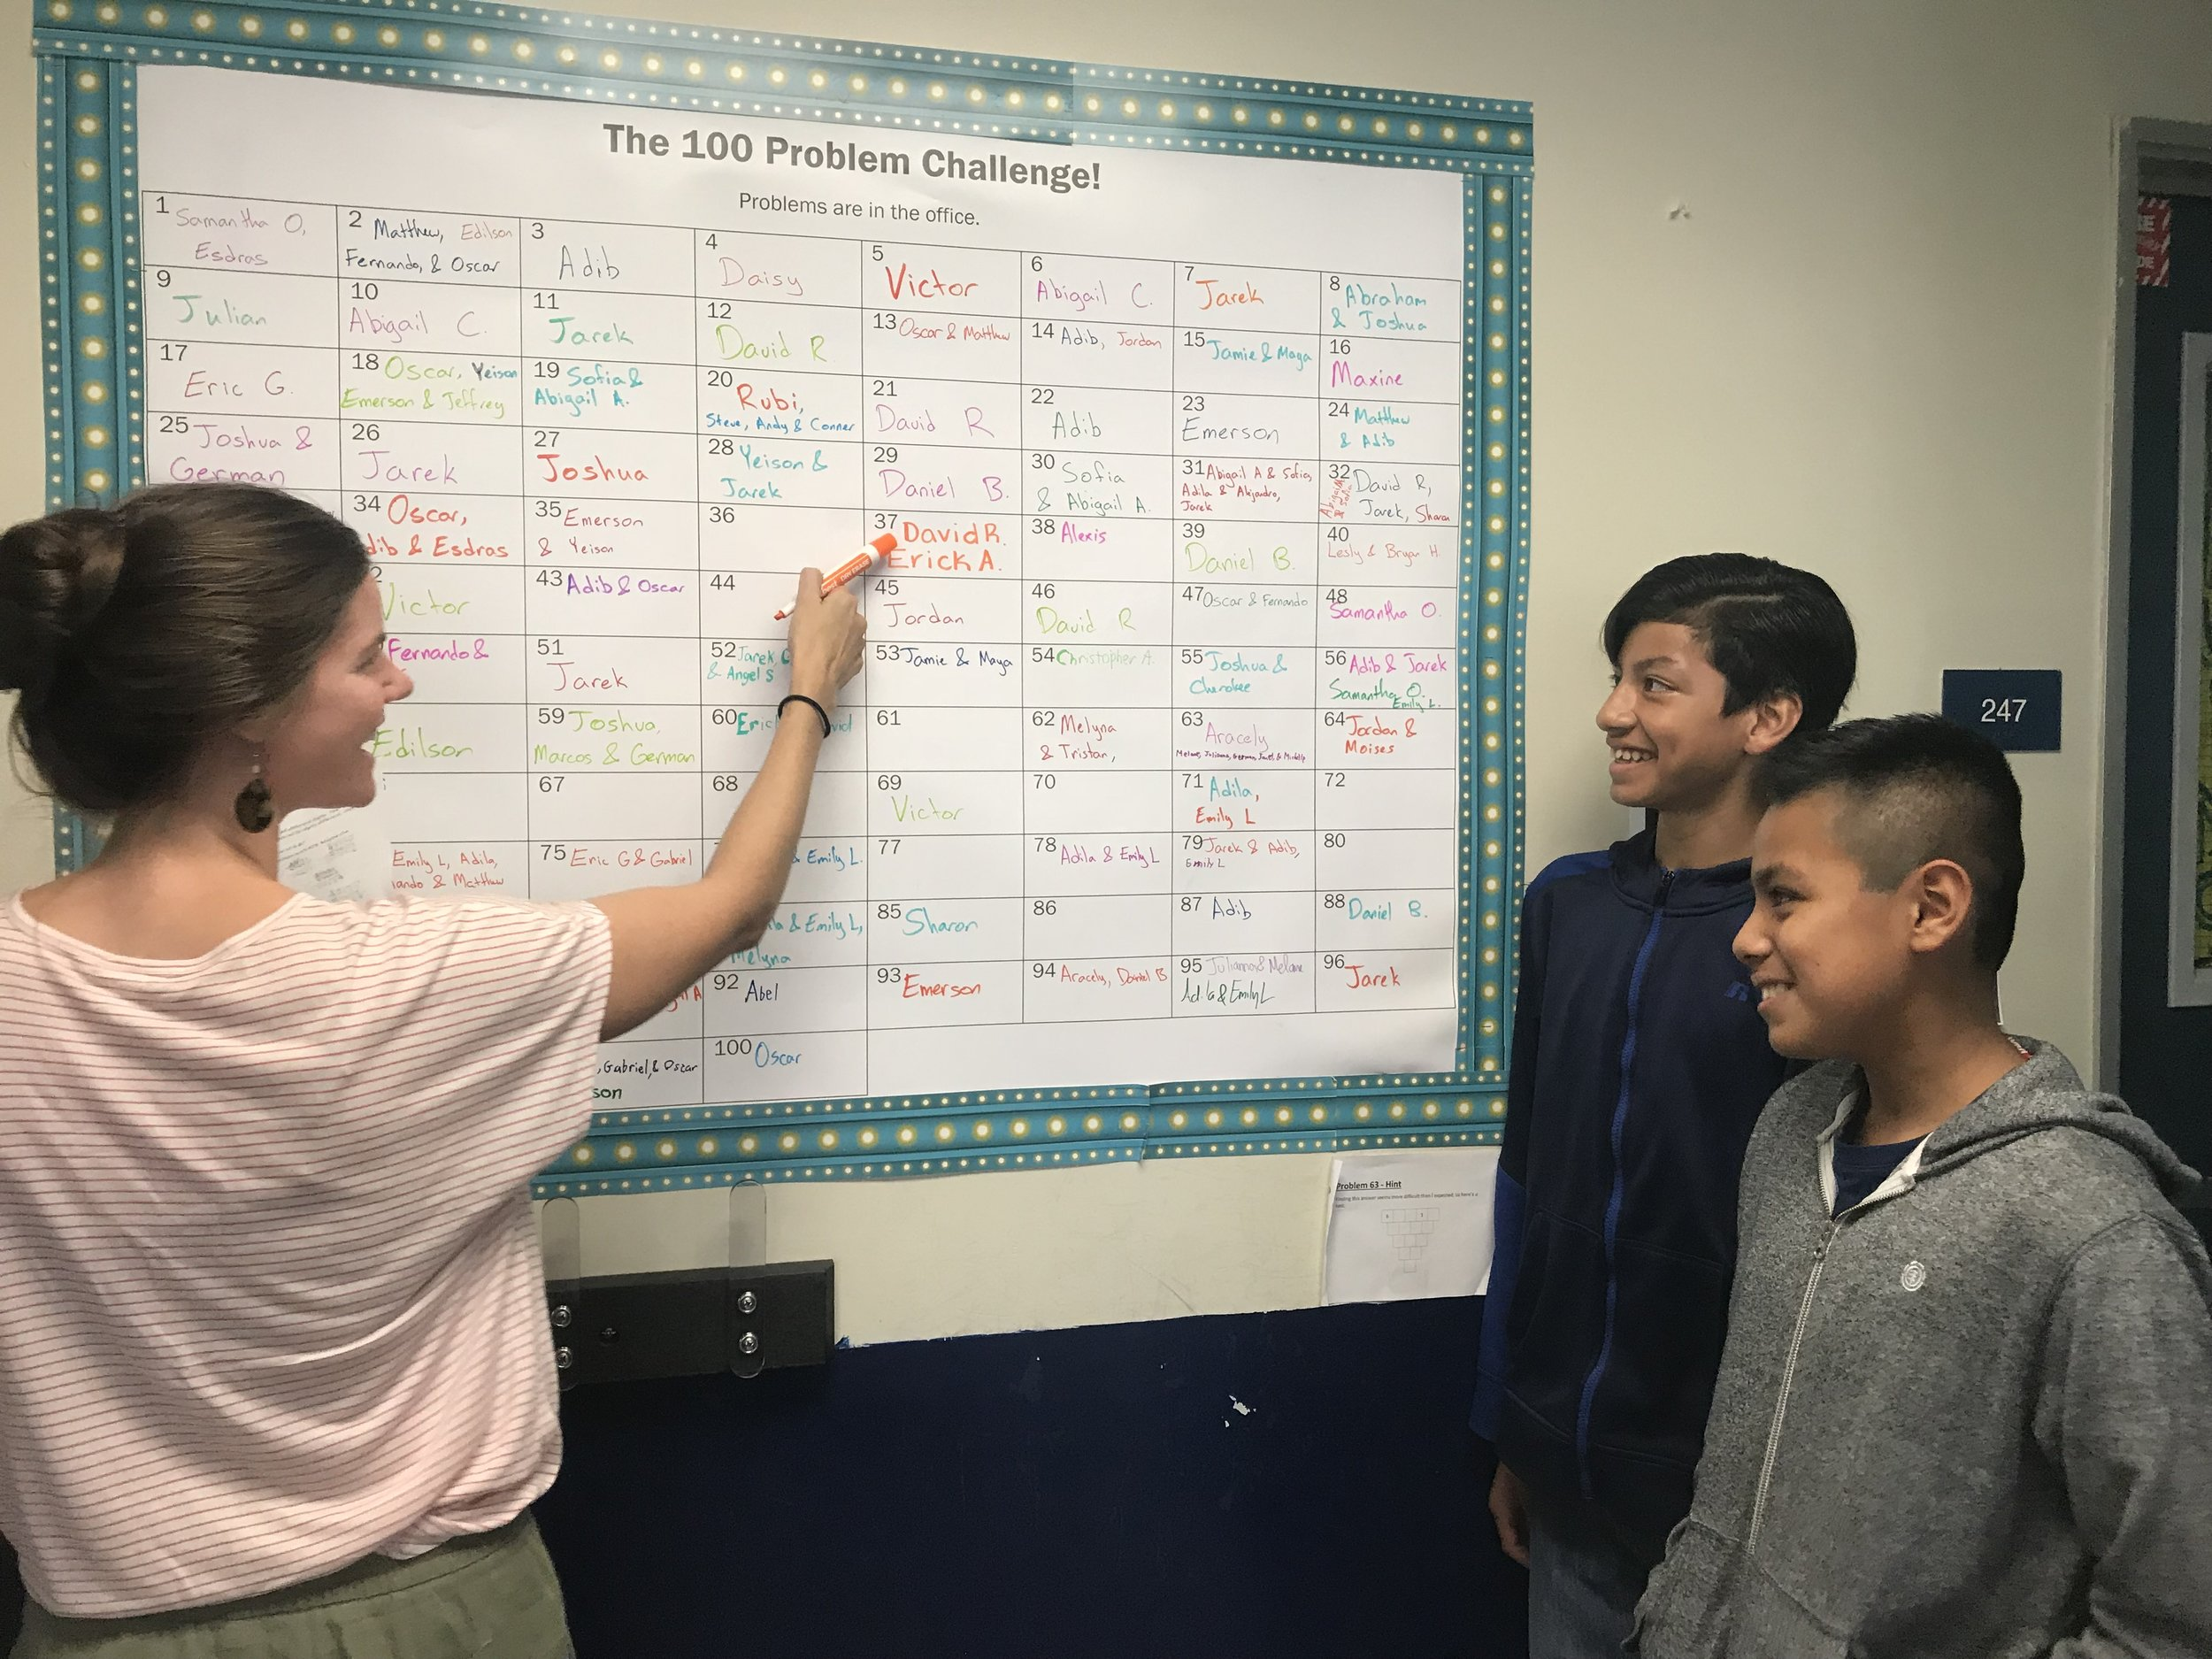 David (right) and Erick A. (middle) solved one of the challenge problems, so Meghan (left) writes their names on the poster.